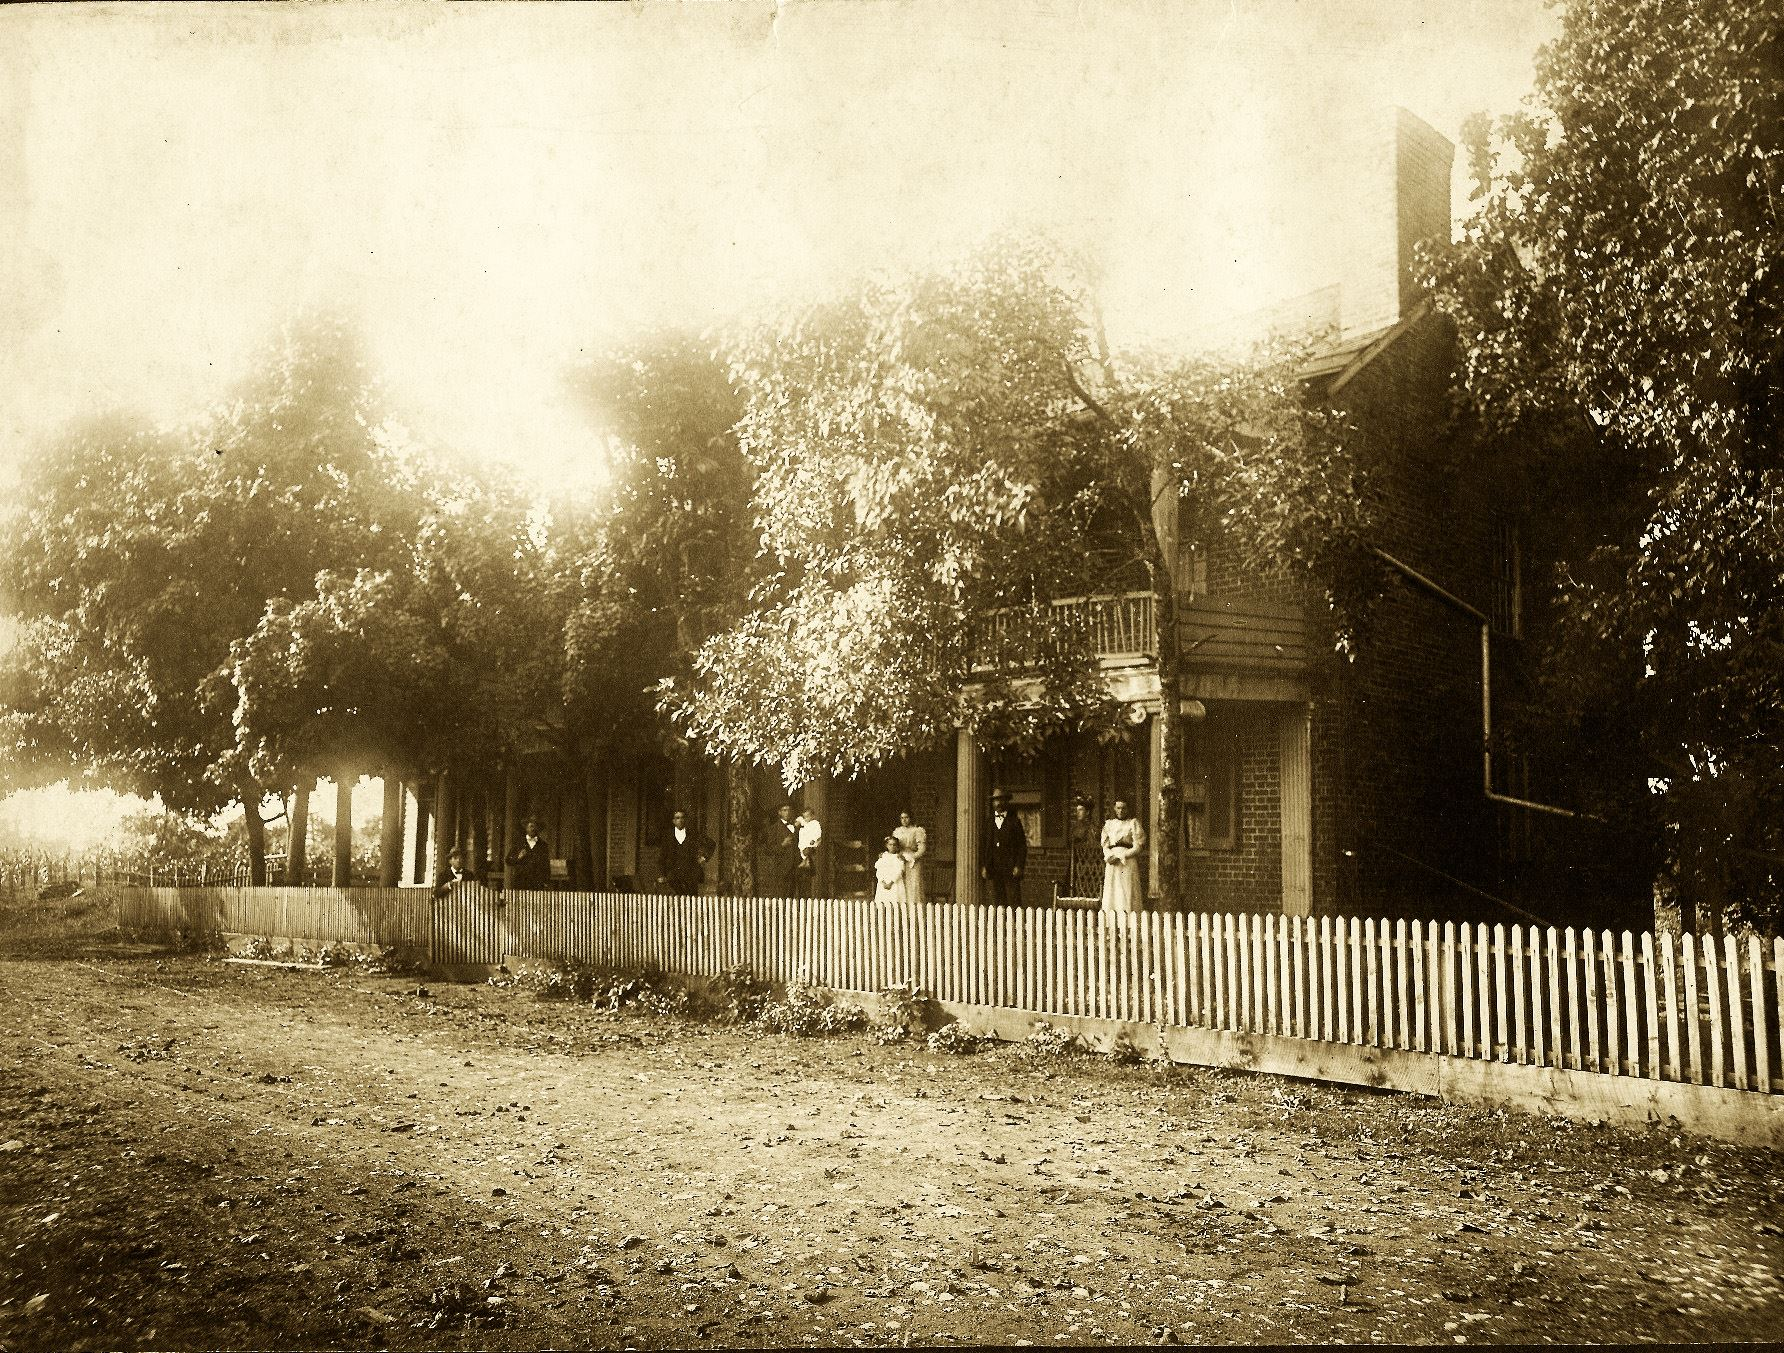 Historic photo of the exterior of the Campbell Station Inn taken in 1898